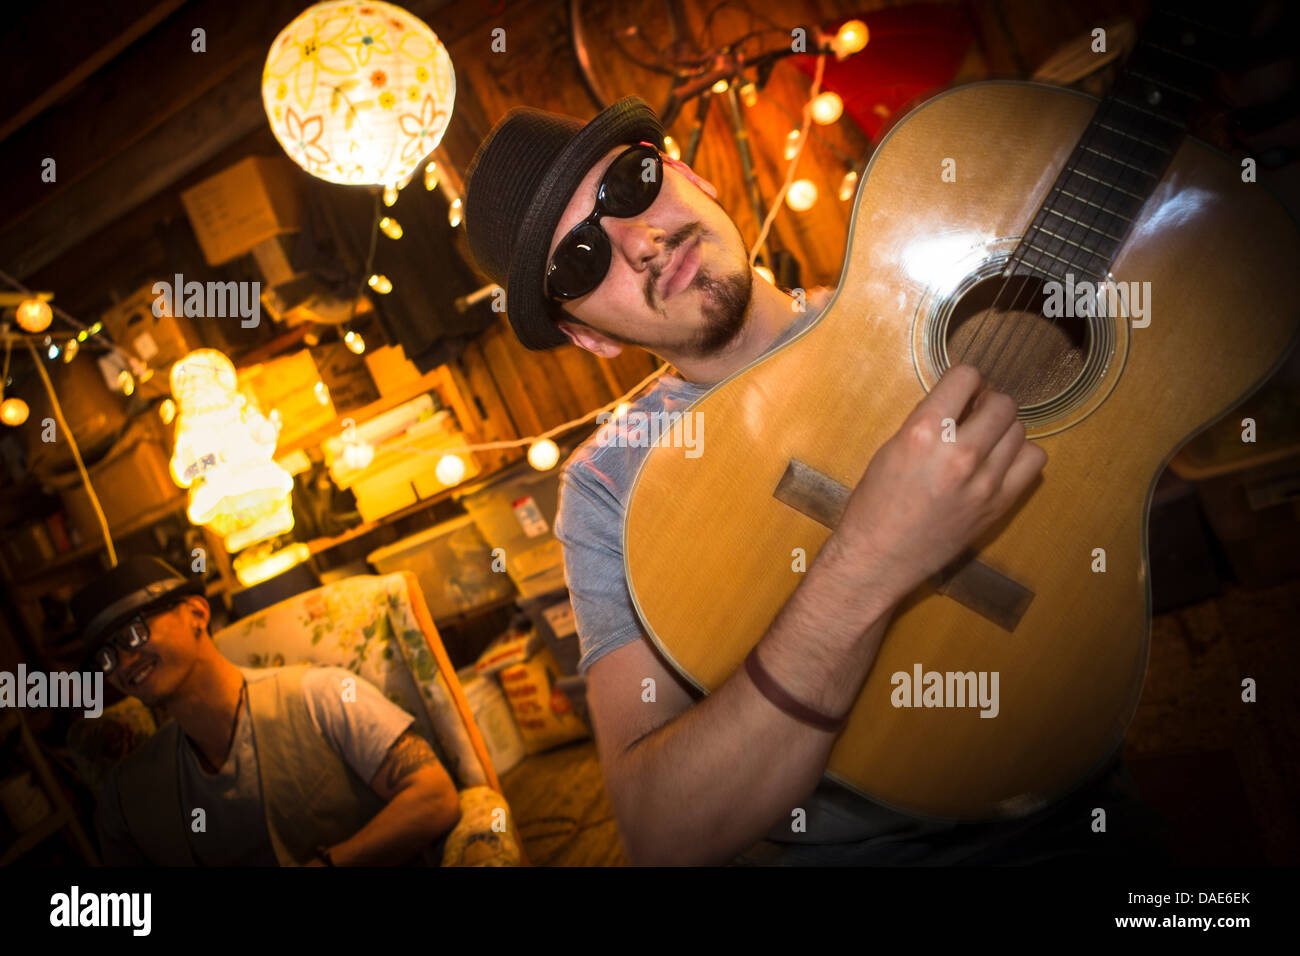 Man wearing hat and sunglasses playing guitar - Stock Image